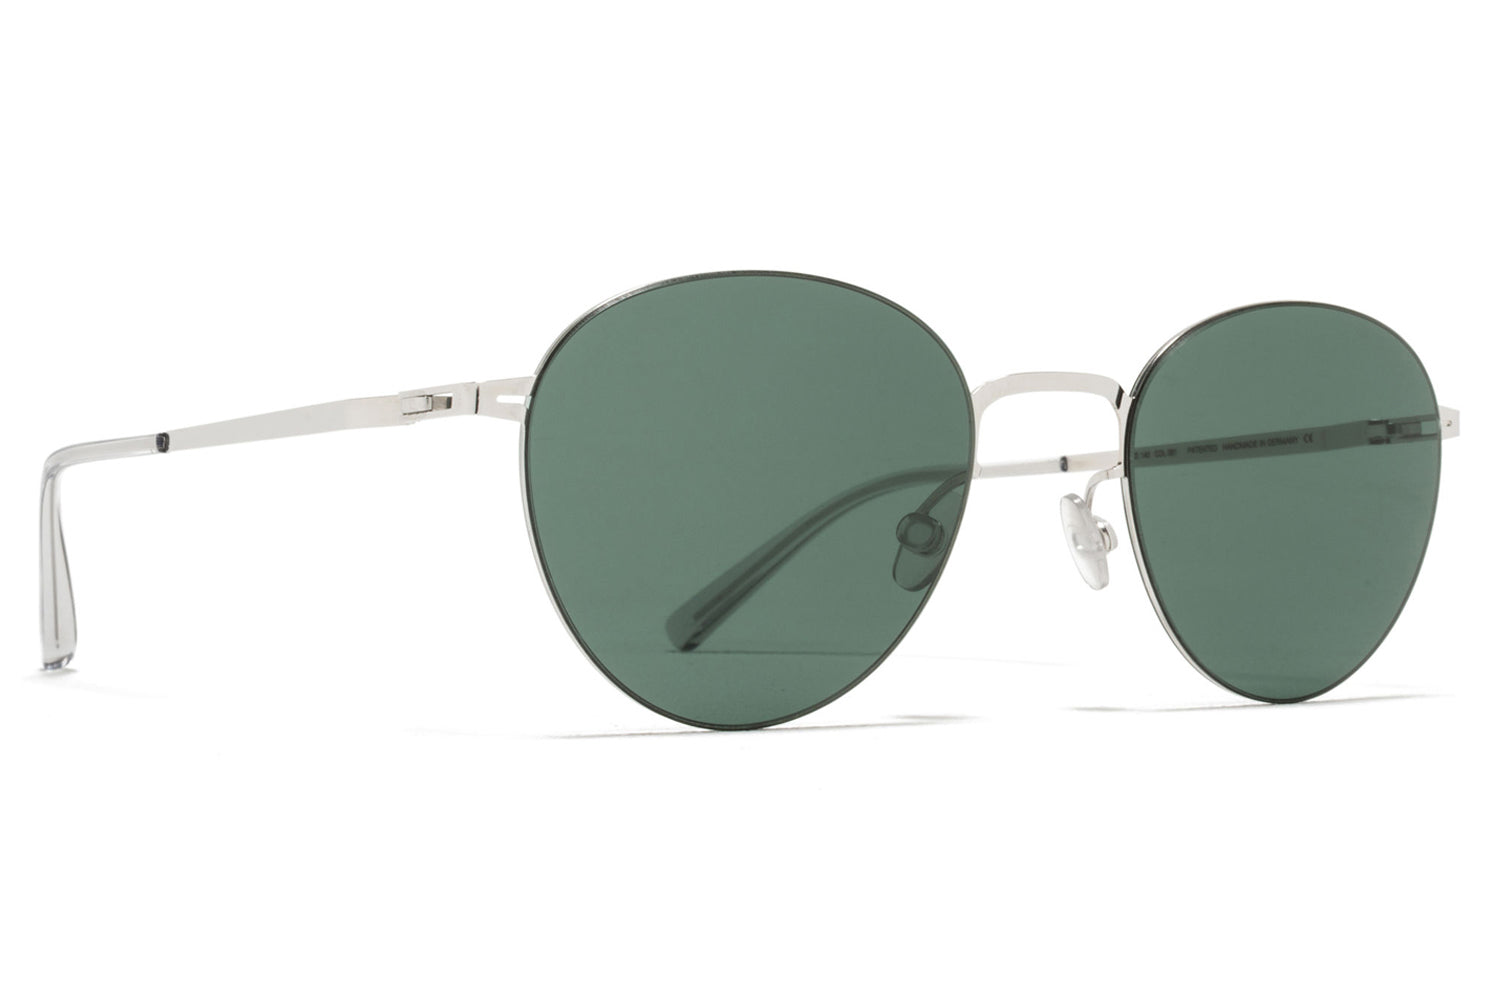 MYKITA LESSRIM - Eito Sunglasses Shiny Silver with Dark Green Solid Lenses